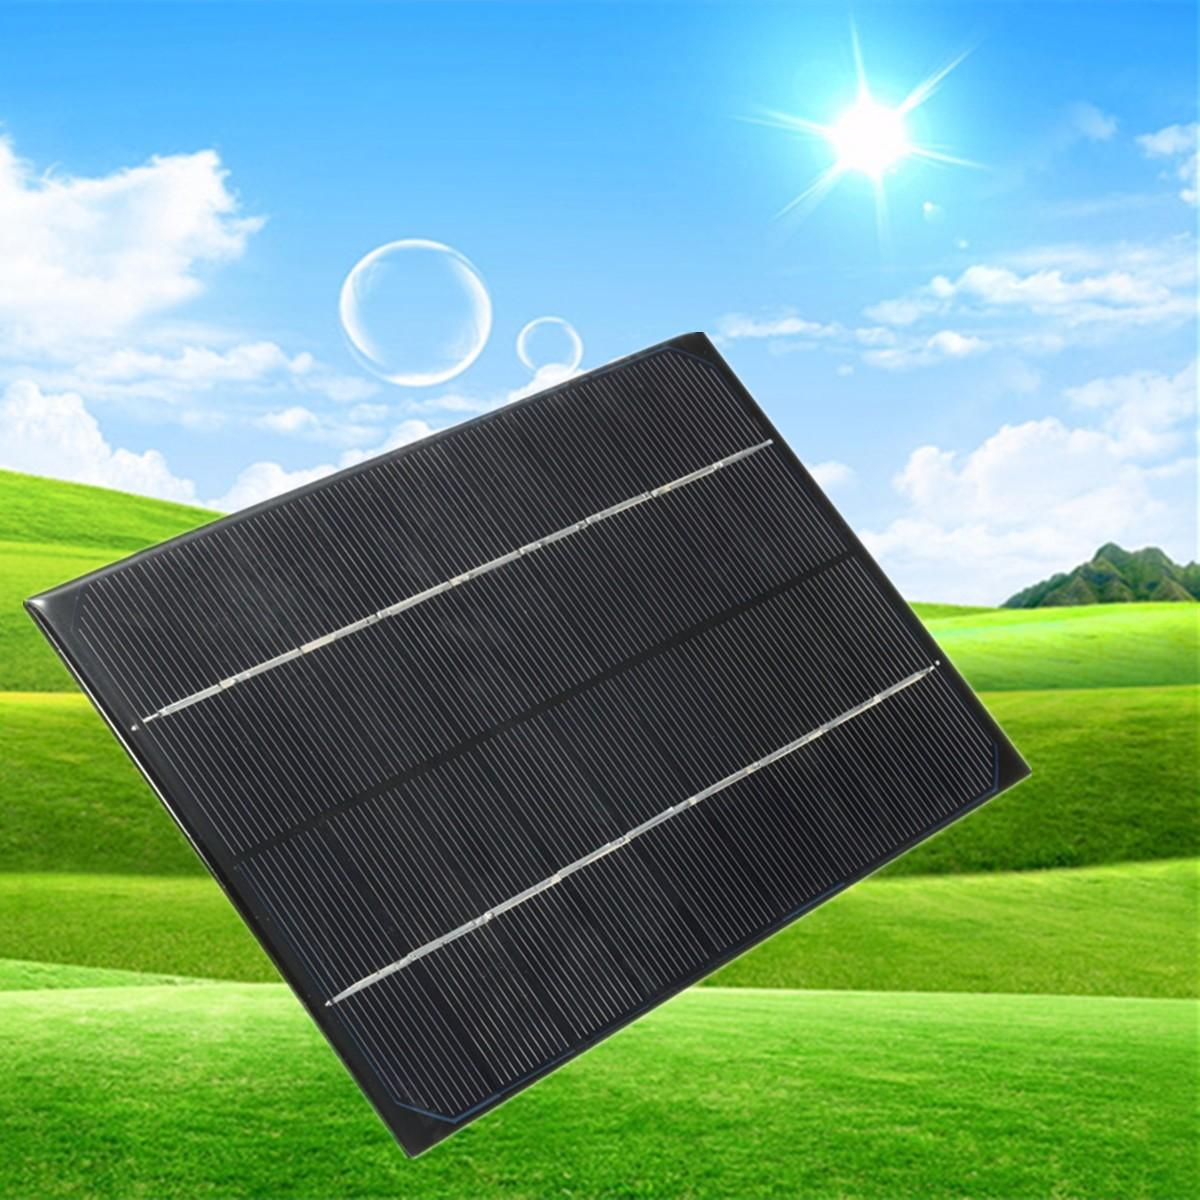 LEORY 4.2W 9V Solar Panel DIY Power Bank Battery Charger MINI 200*130*2.5mm Solar Cell For System Supply